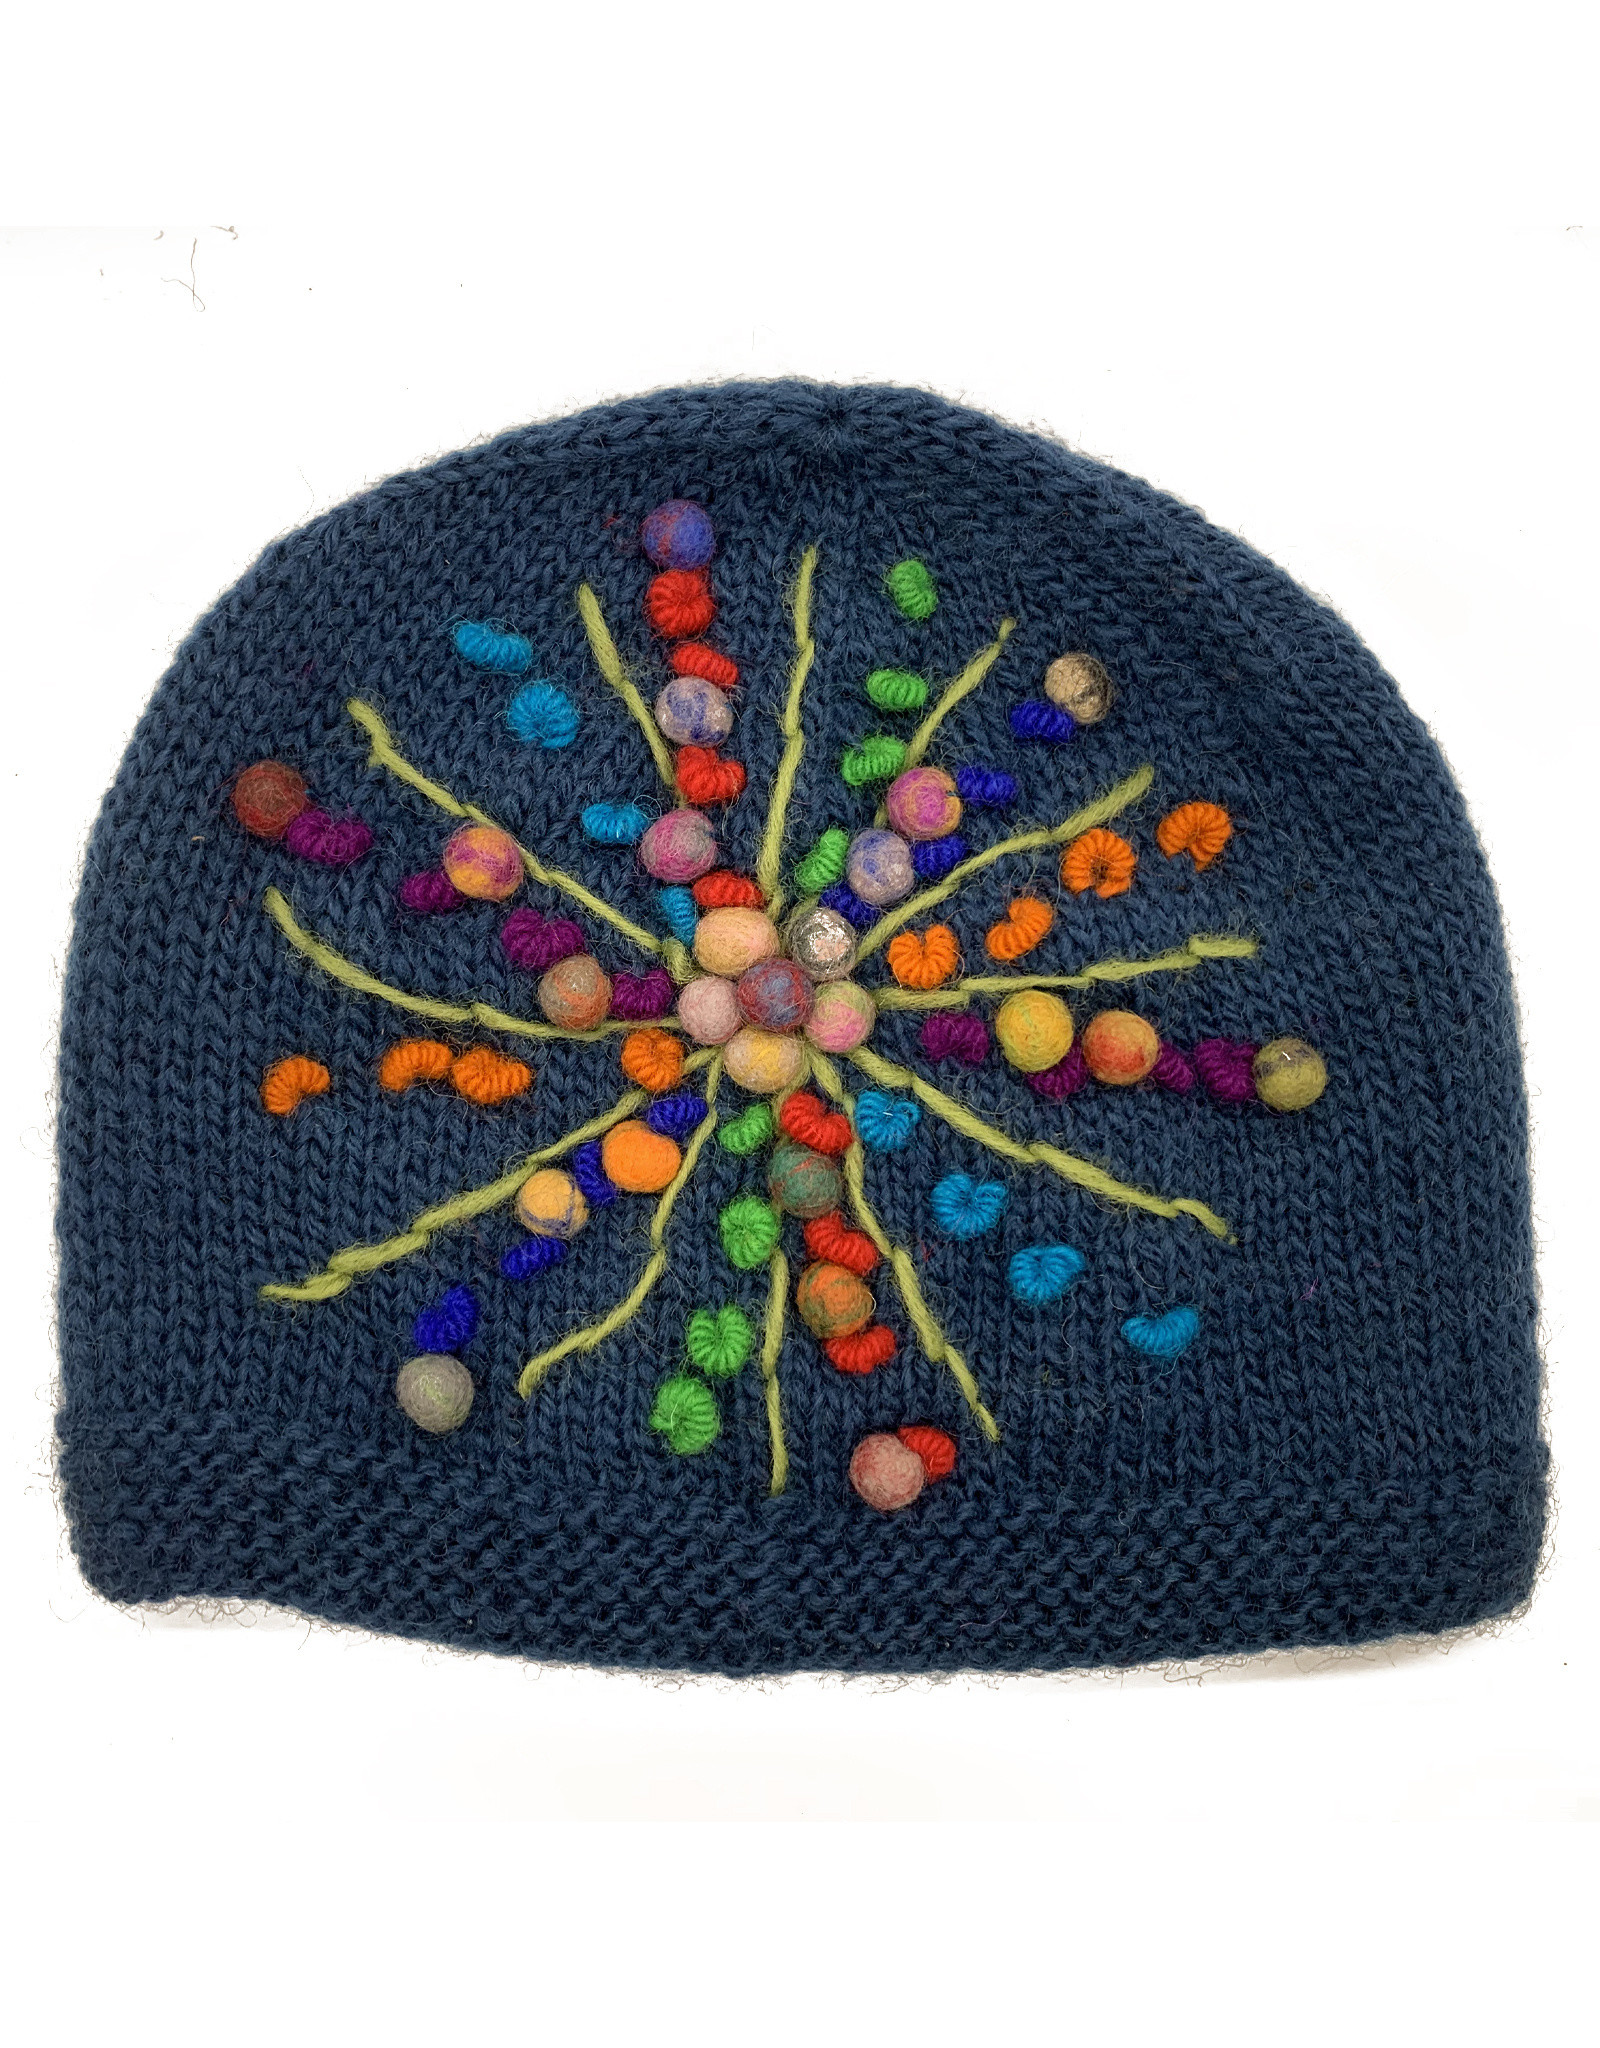 Teal Wool Beanie with Star